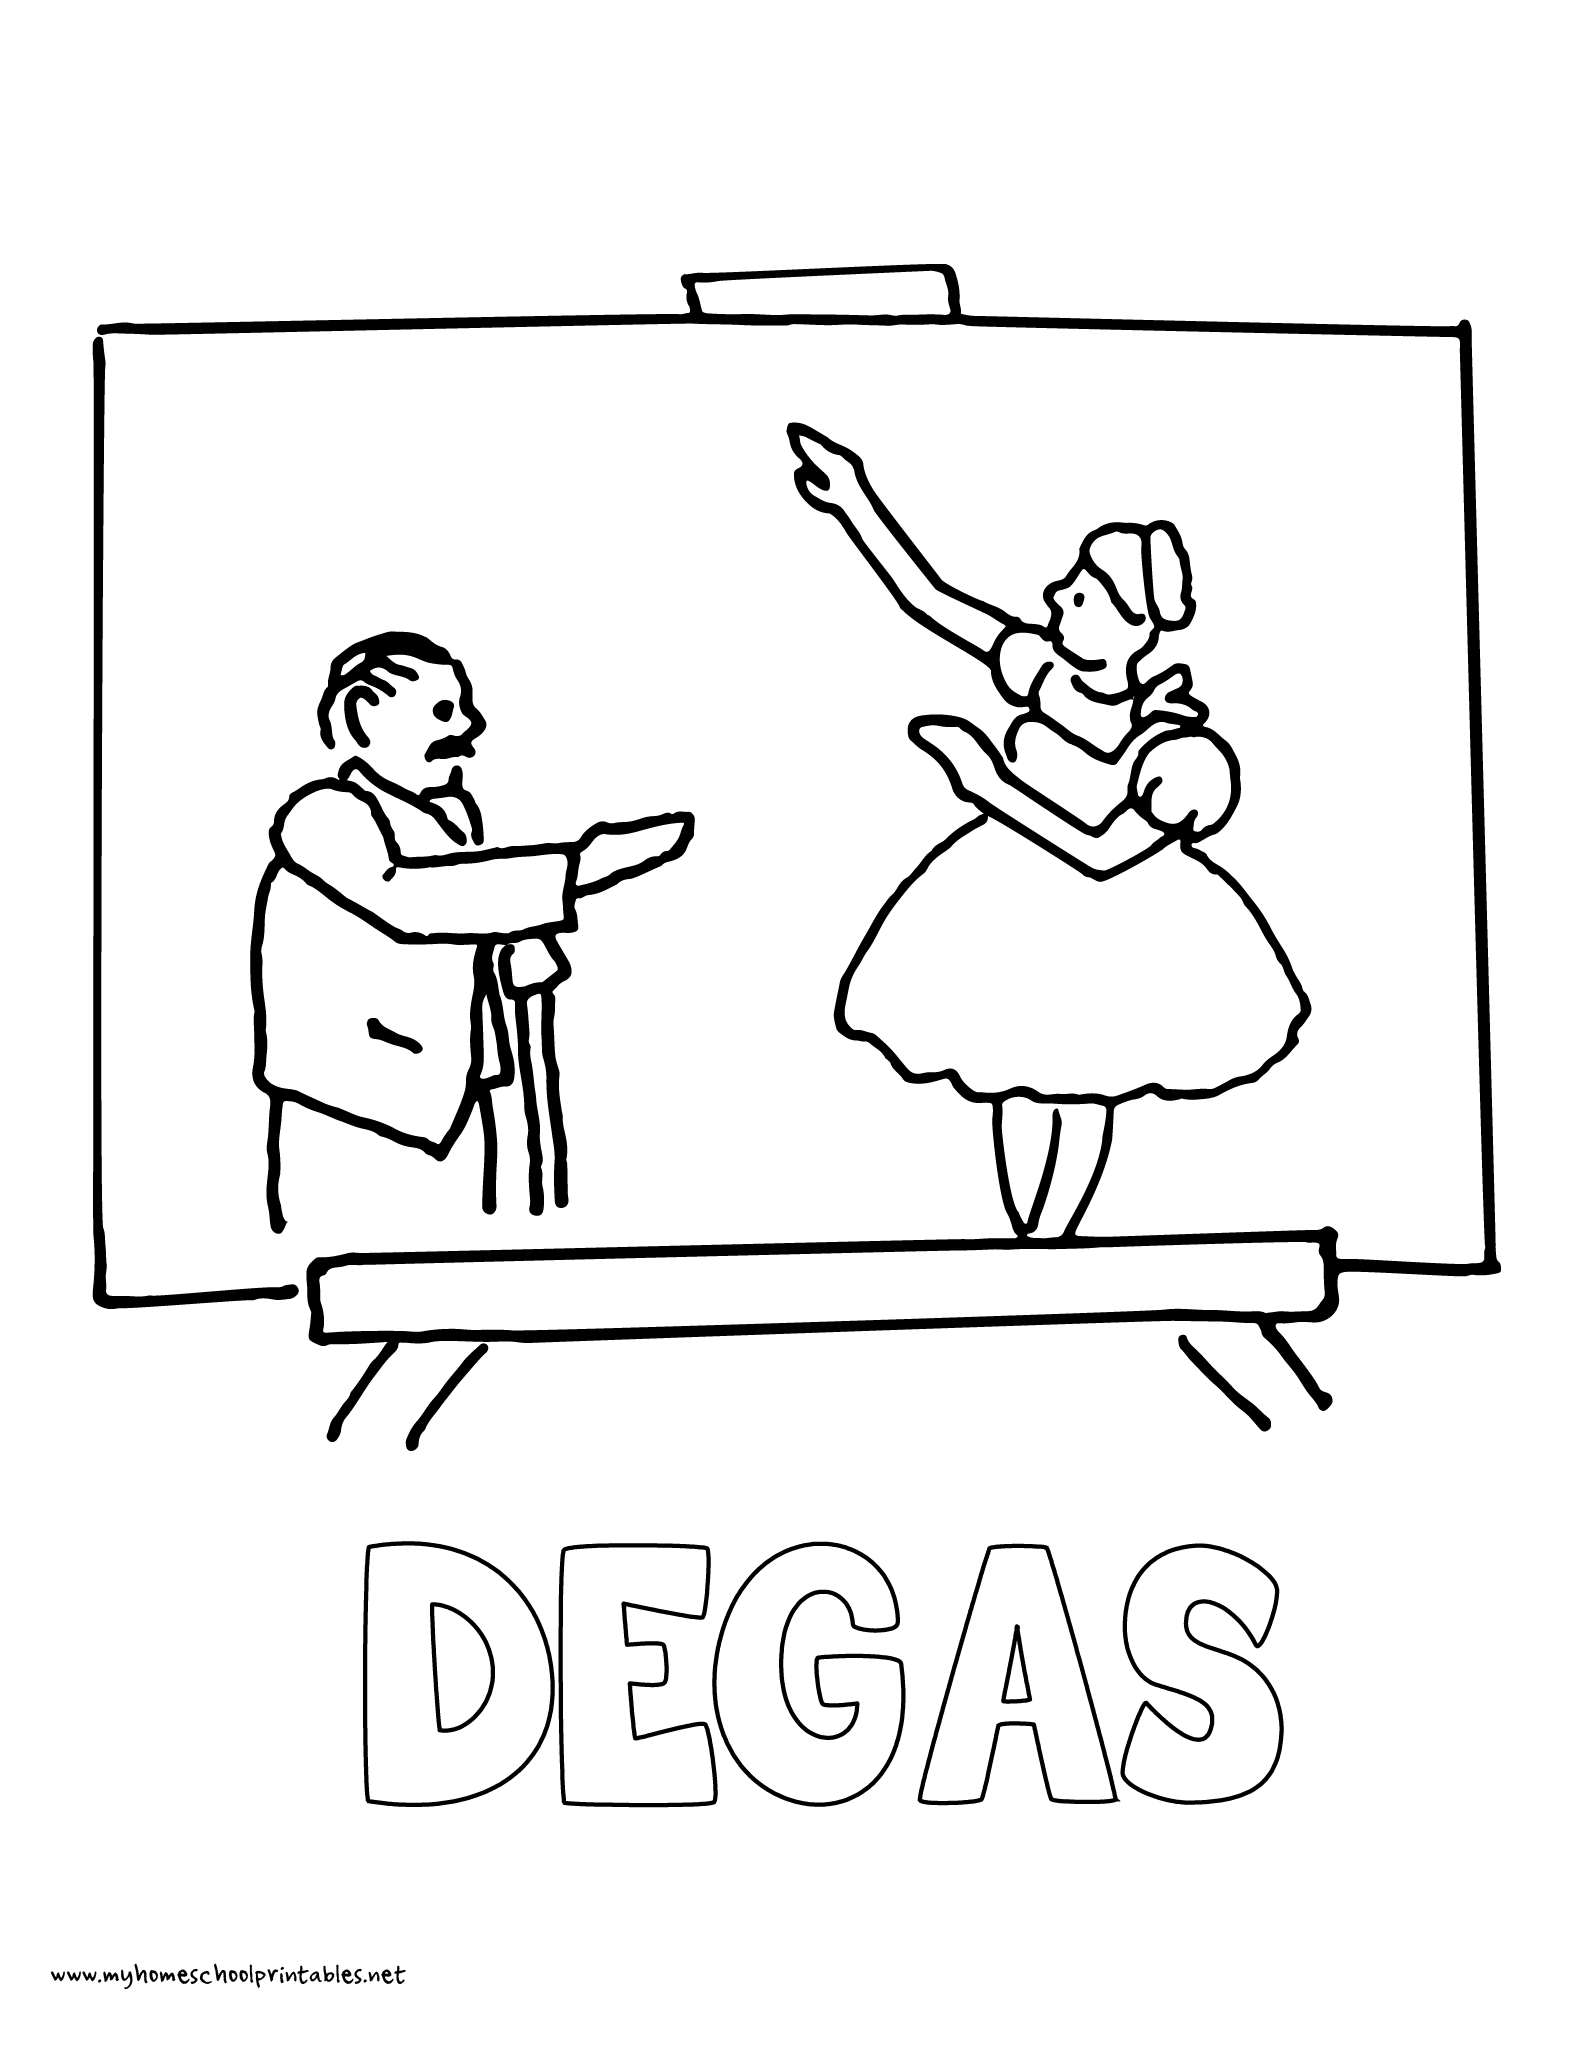 degas coloring book pages | My Homeschool Printables » History Coloring Pages – Volume 4